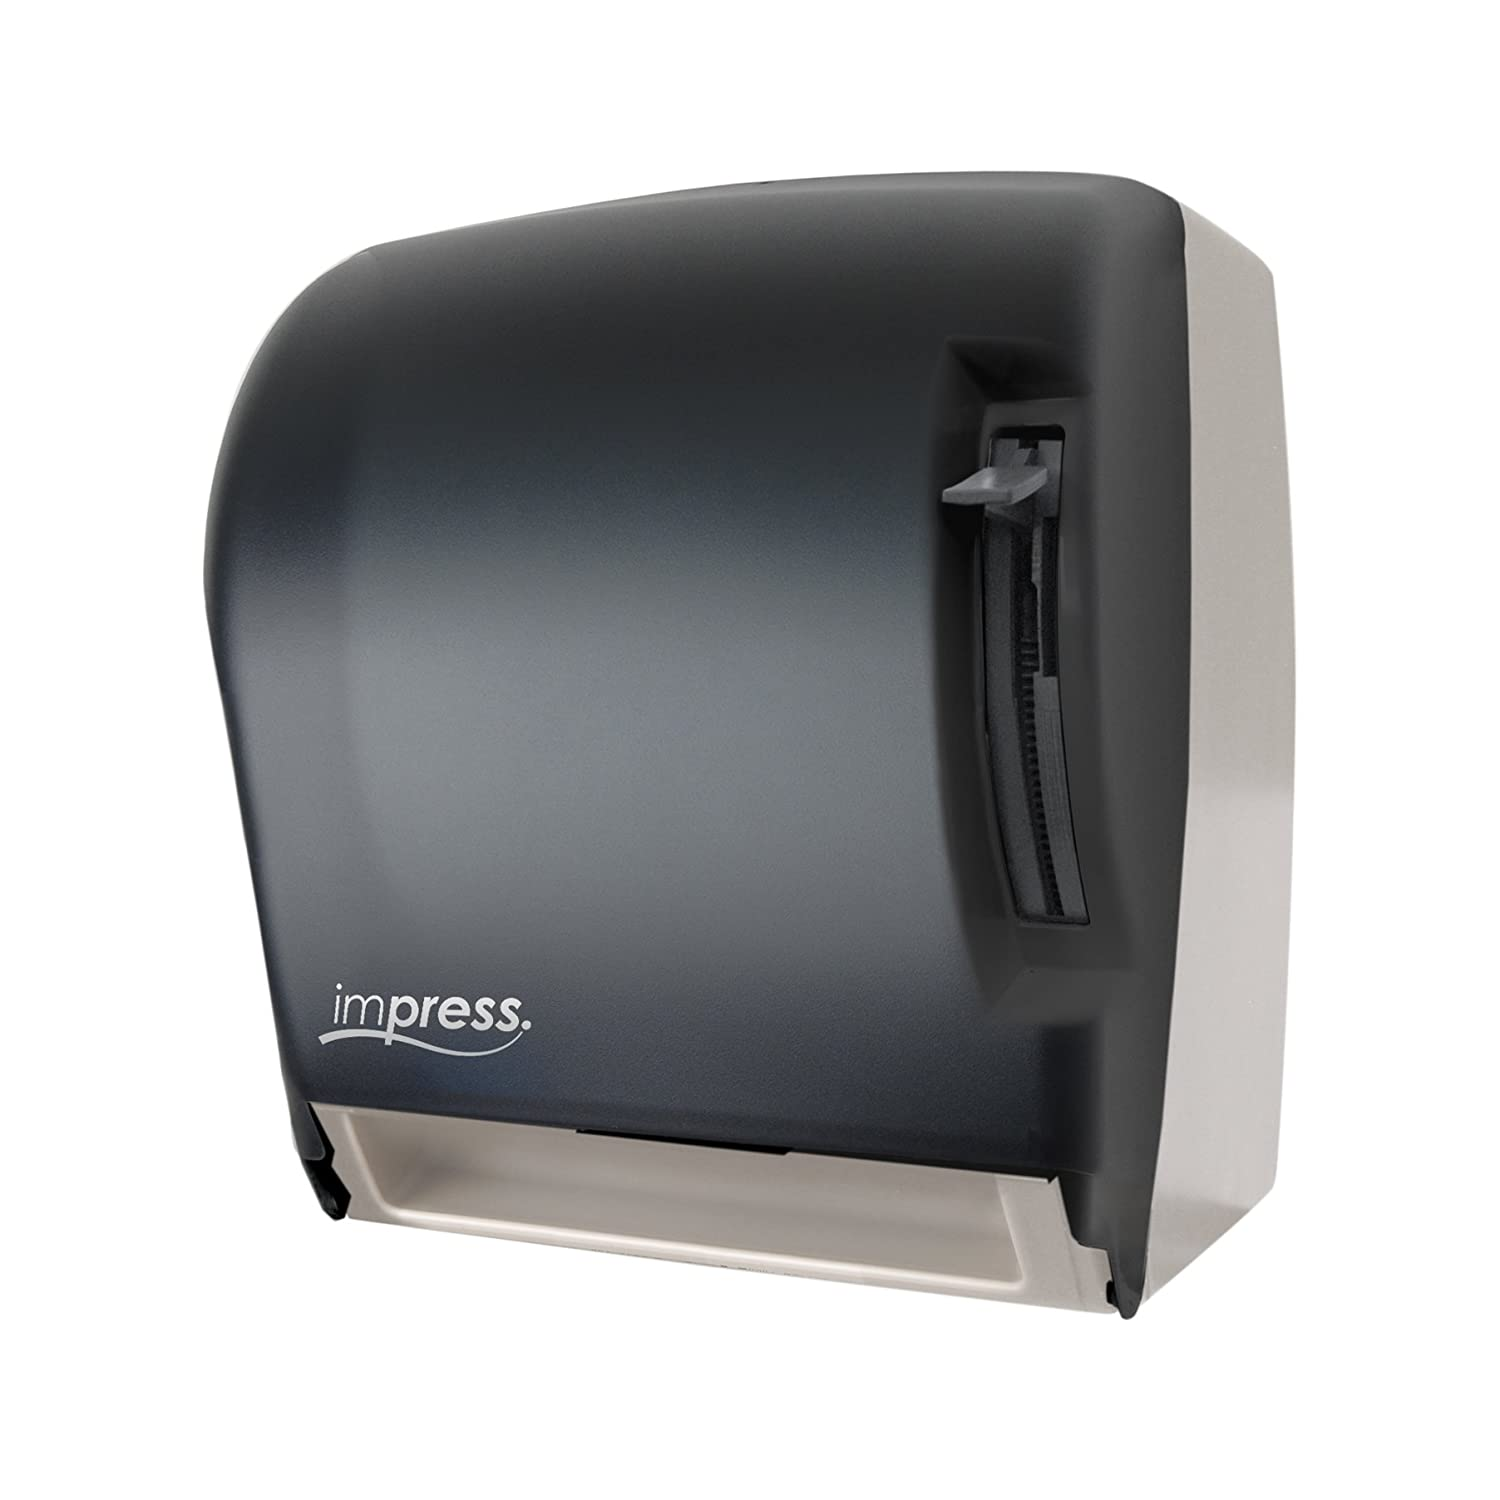 Superieur Palmer Fixture TD0220 01 Impress Lever Roll Towel Dispenser, Dark  Translucent: Amazon.com: Industrial U0026 Scientific